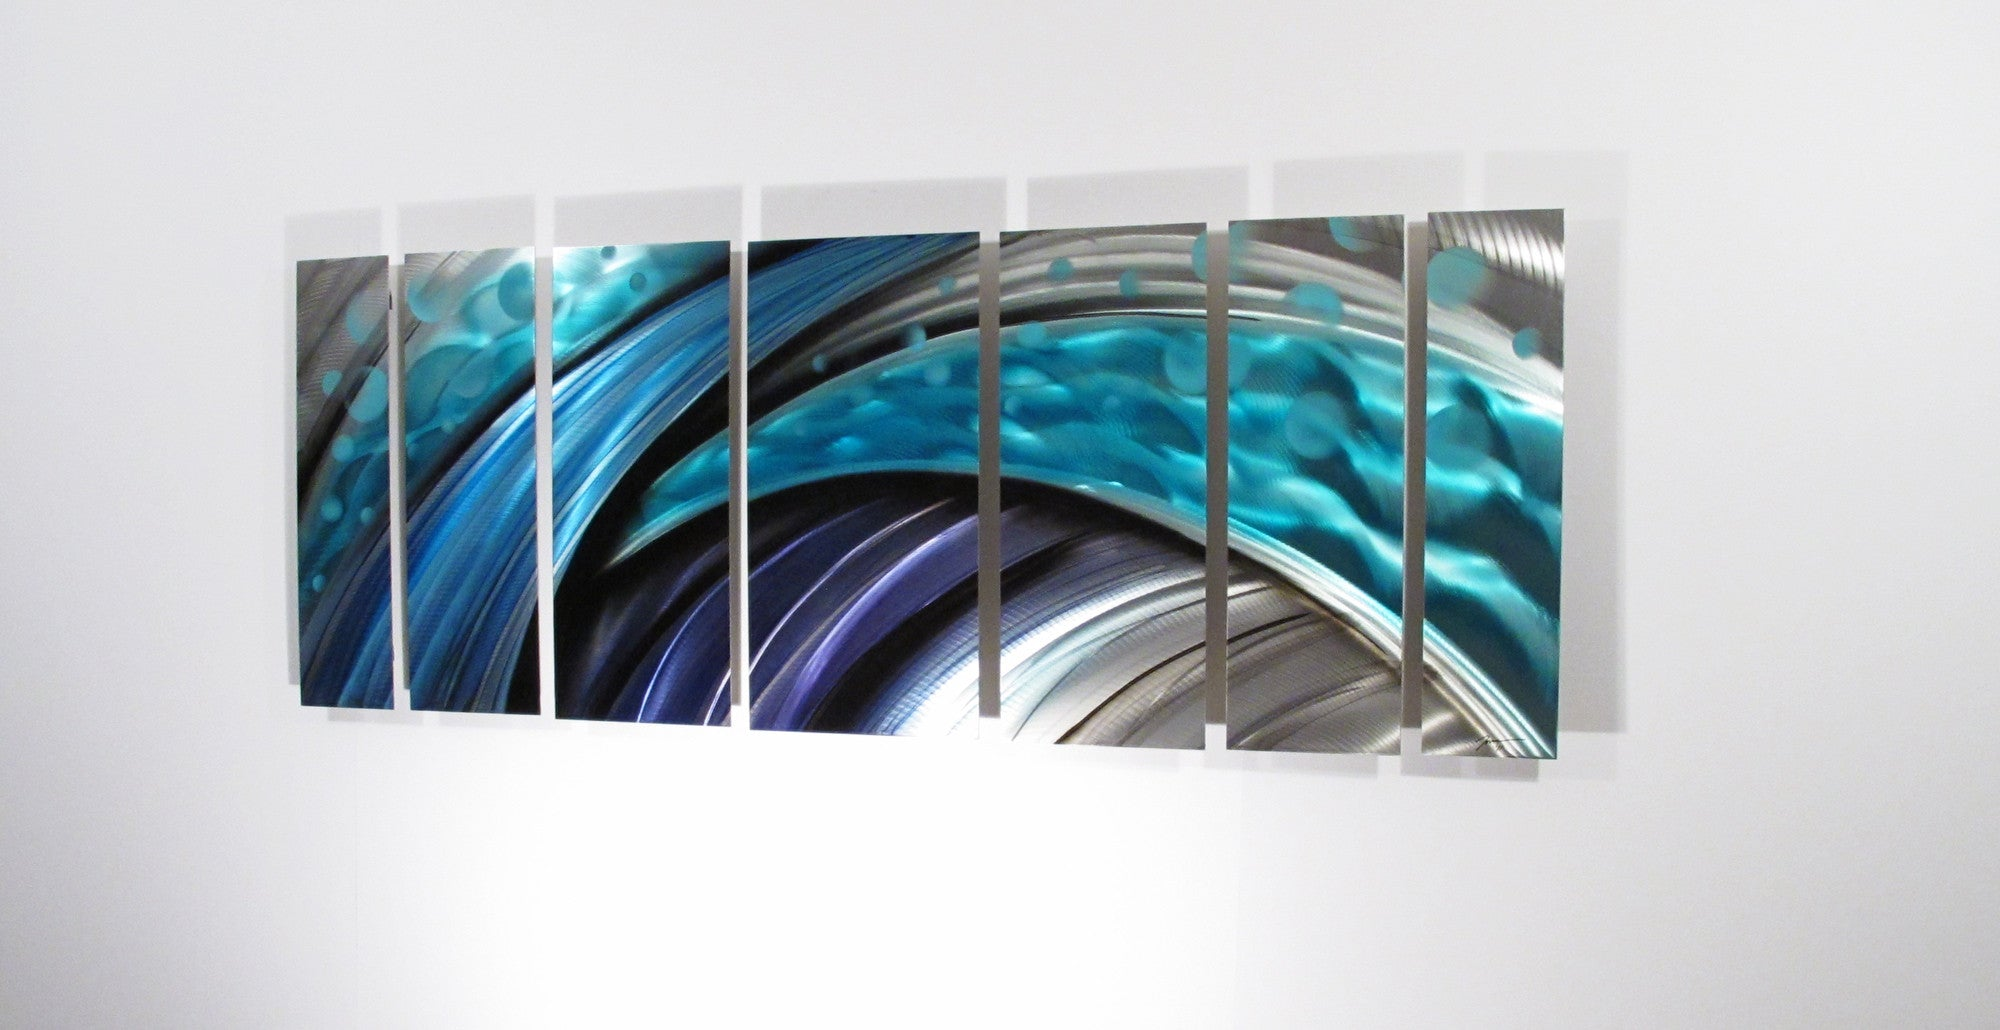 "Blue Metal Wall Art Awesome Typhoon"" Large Modern Abstract Metal Wall Art Sculpture Blue  Dv8 Inspiration Design"